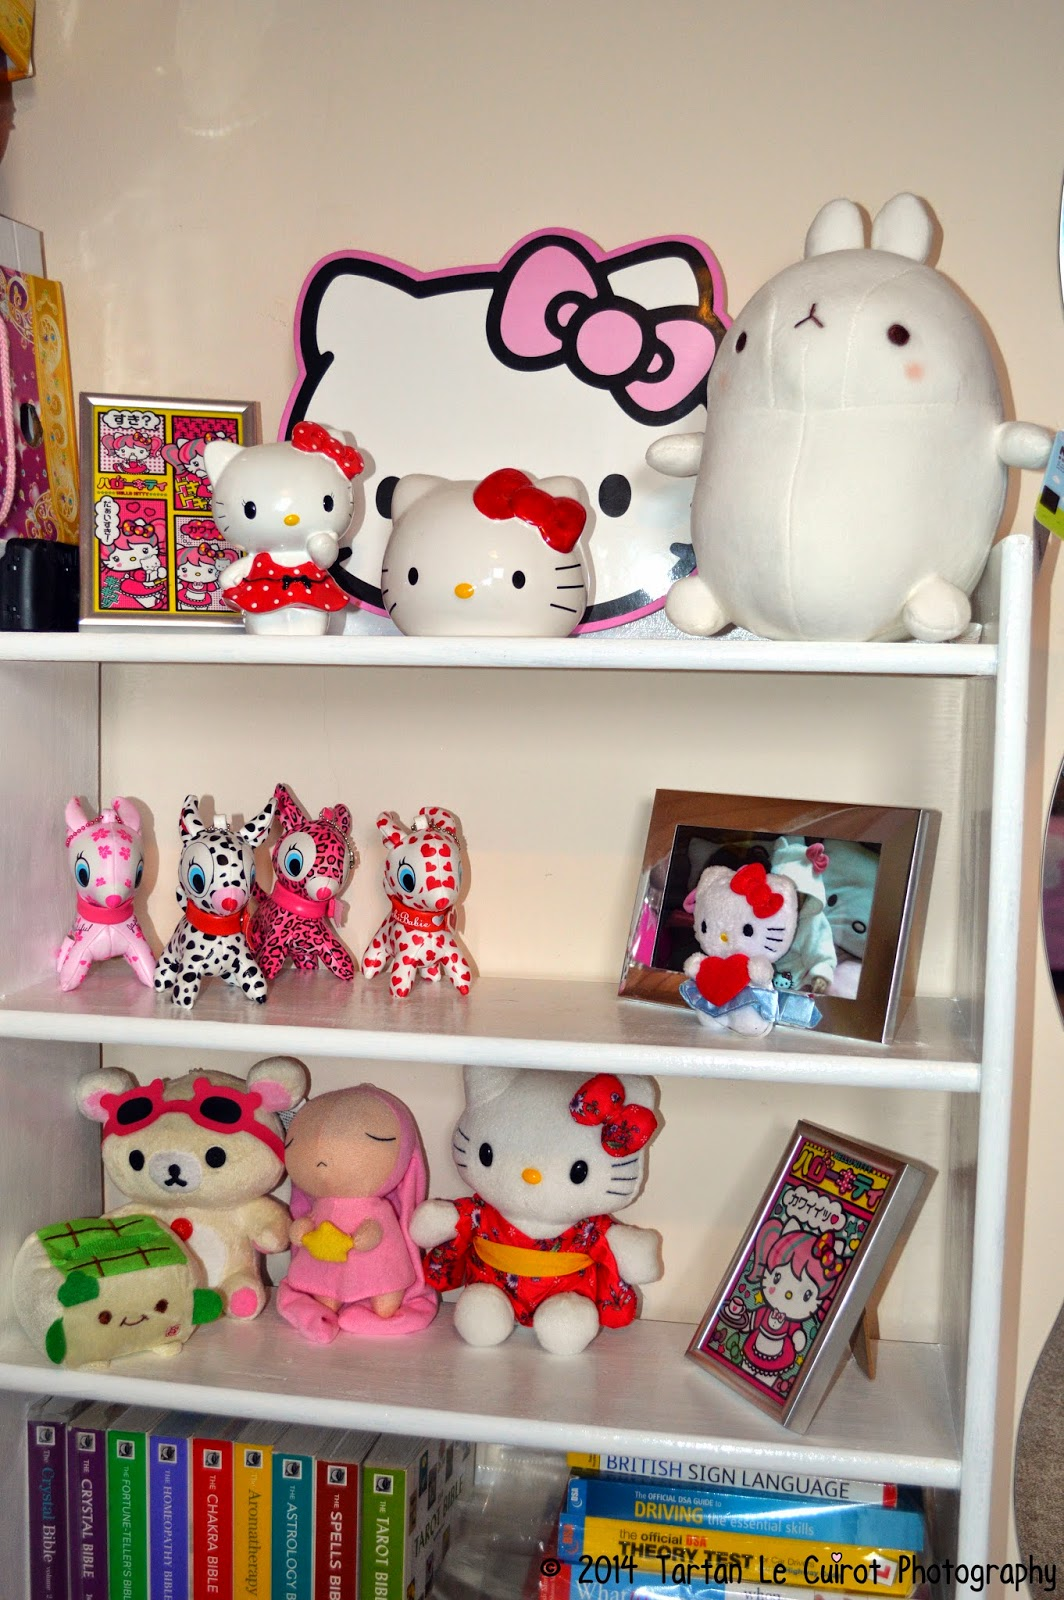 Alternative girl kawaii world how to make your room kawaii for Stuff to decorate room